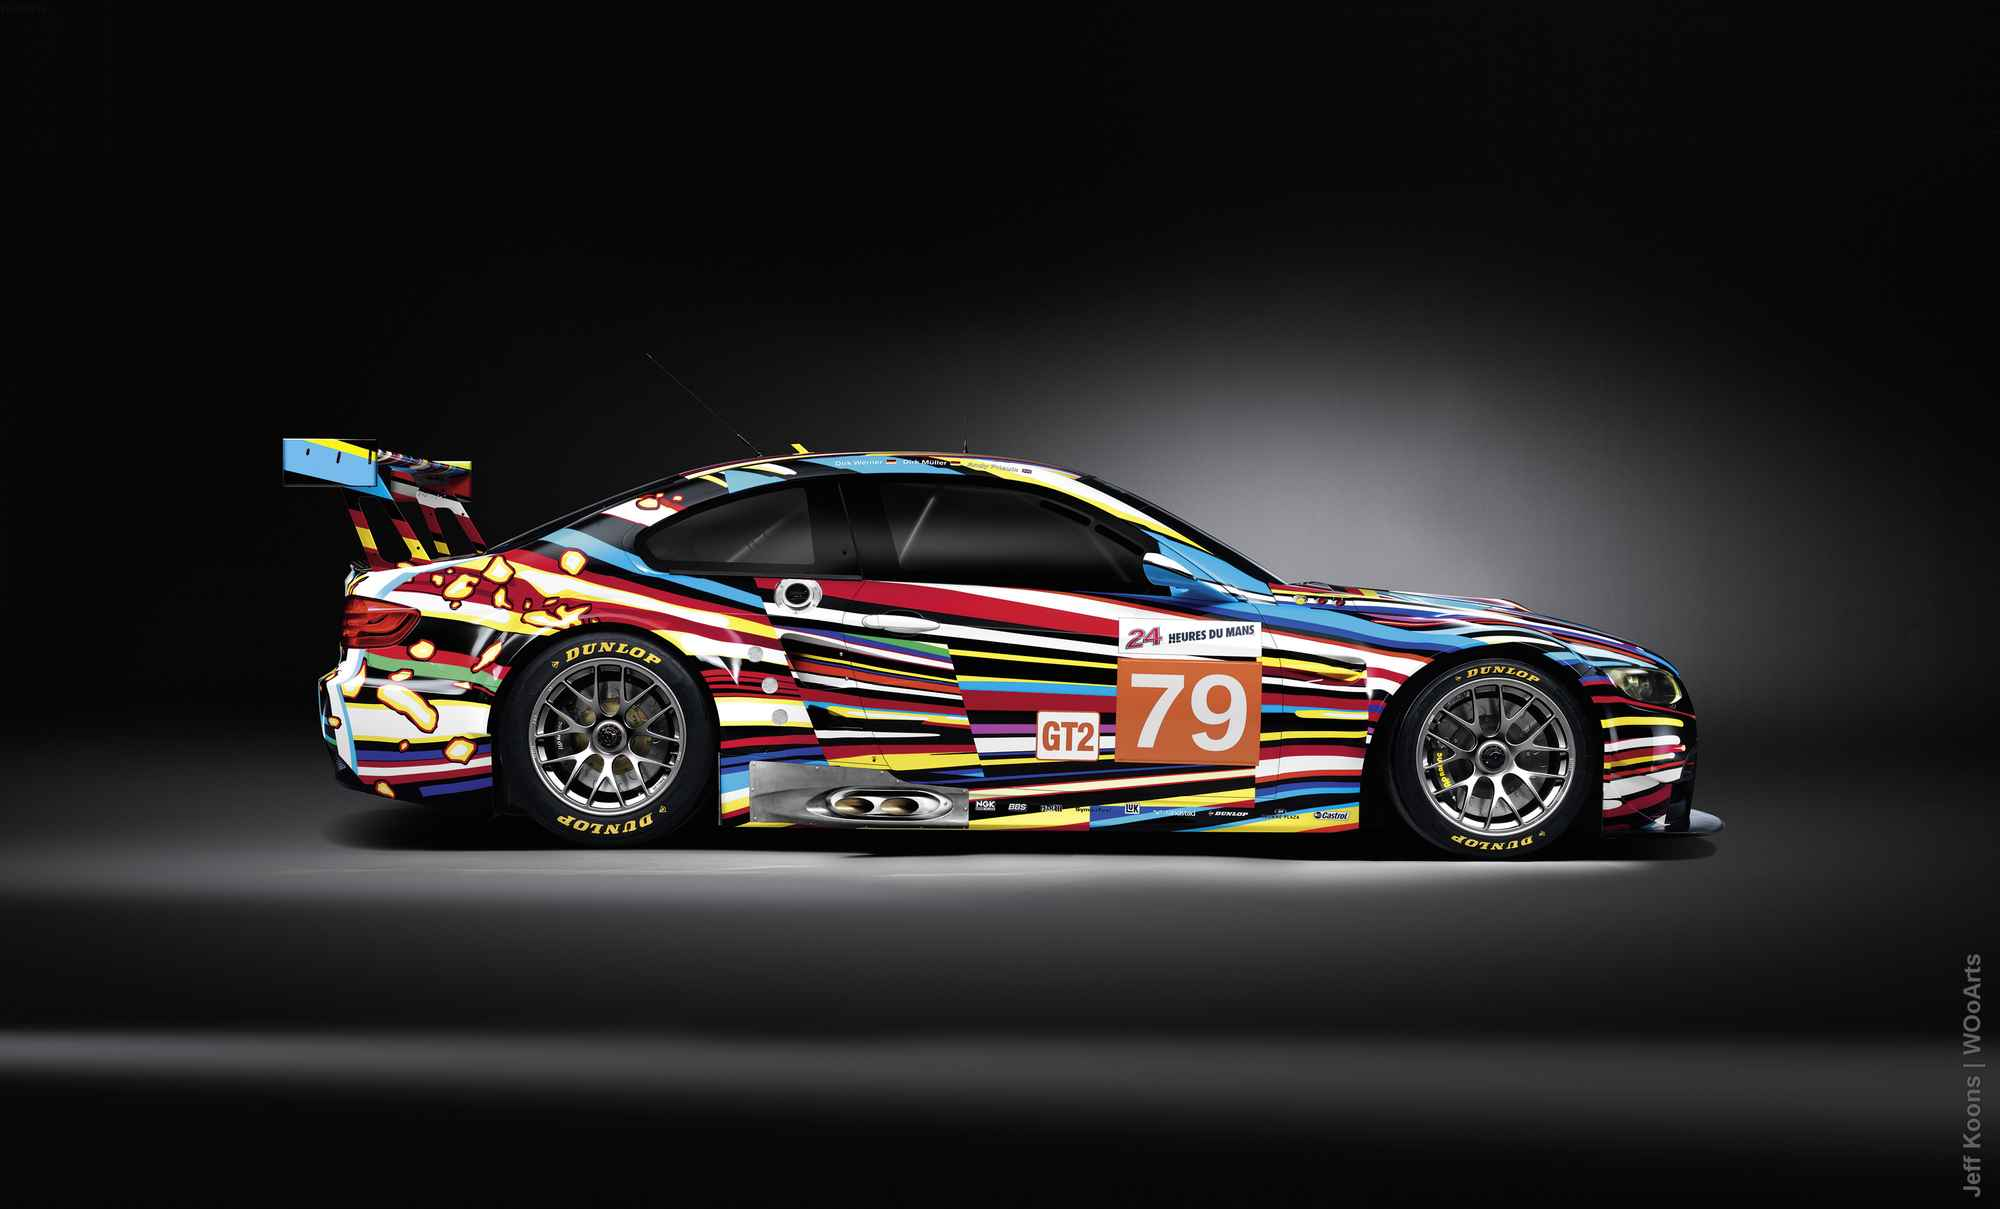 BMW Paint Design by Artist Jeff Koons in 2010